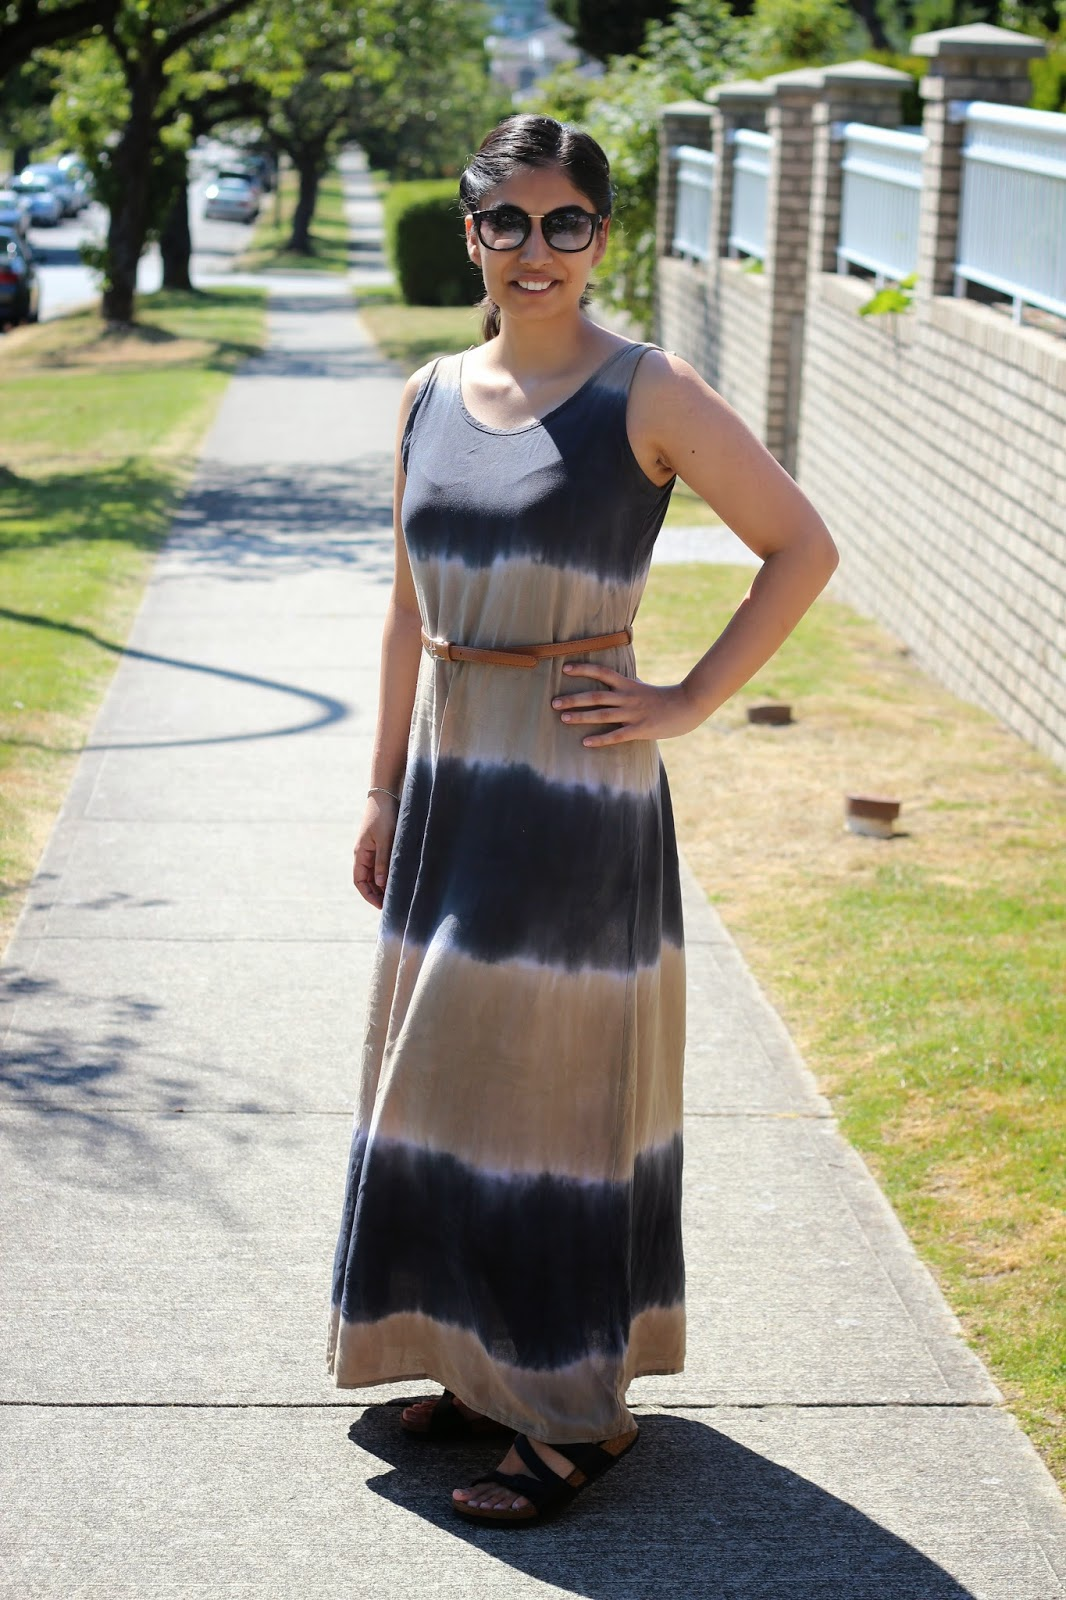 3 ways to wear a maxi dress - maxi dress with belt